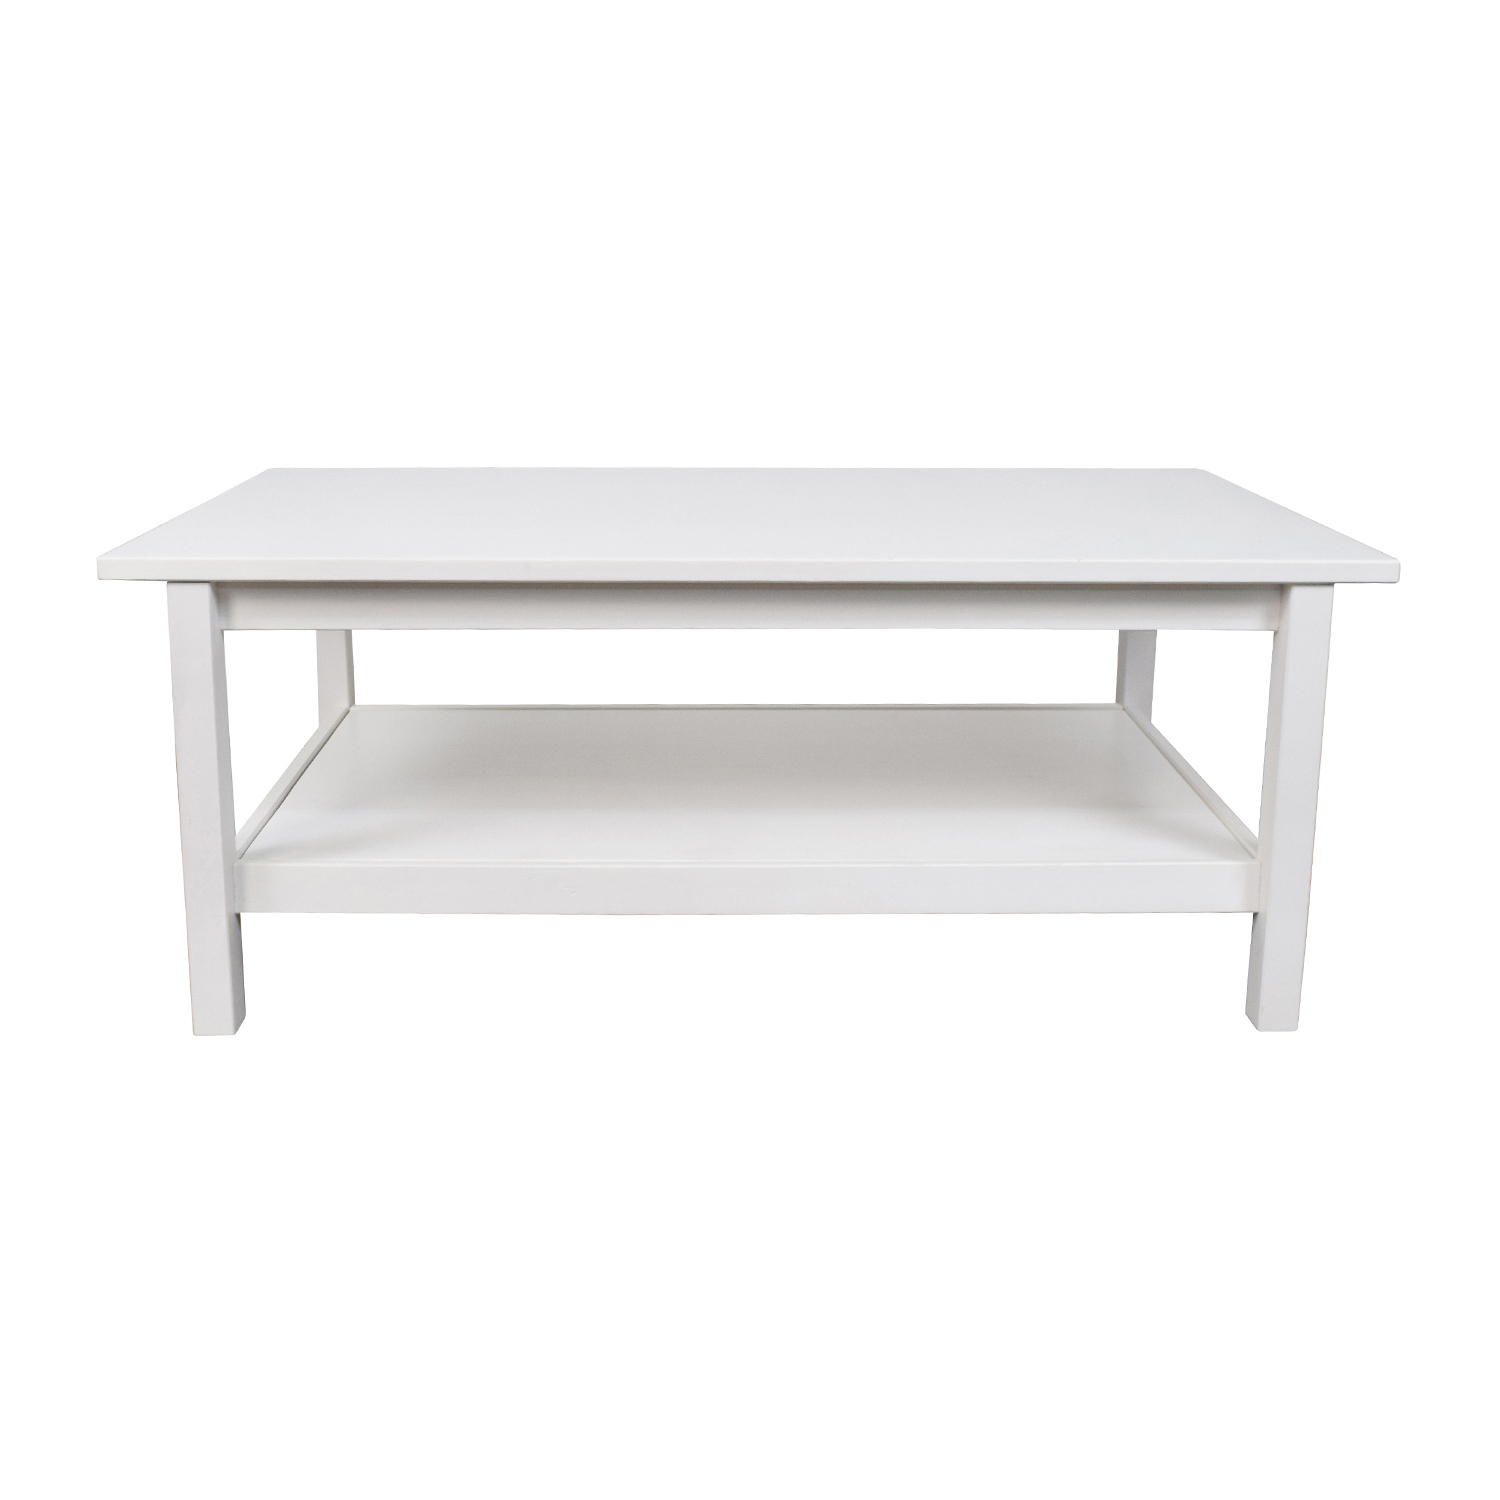 Hemnes Coffee Table White Stain 118x75 Cm: Hemnes Coffee Table